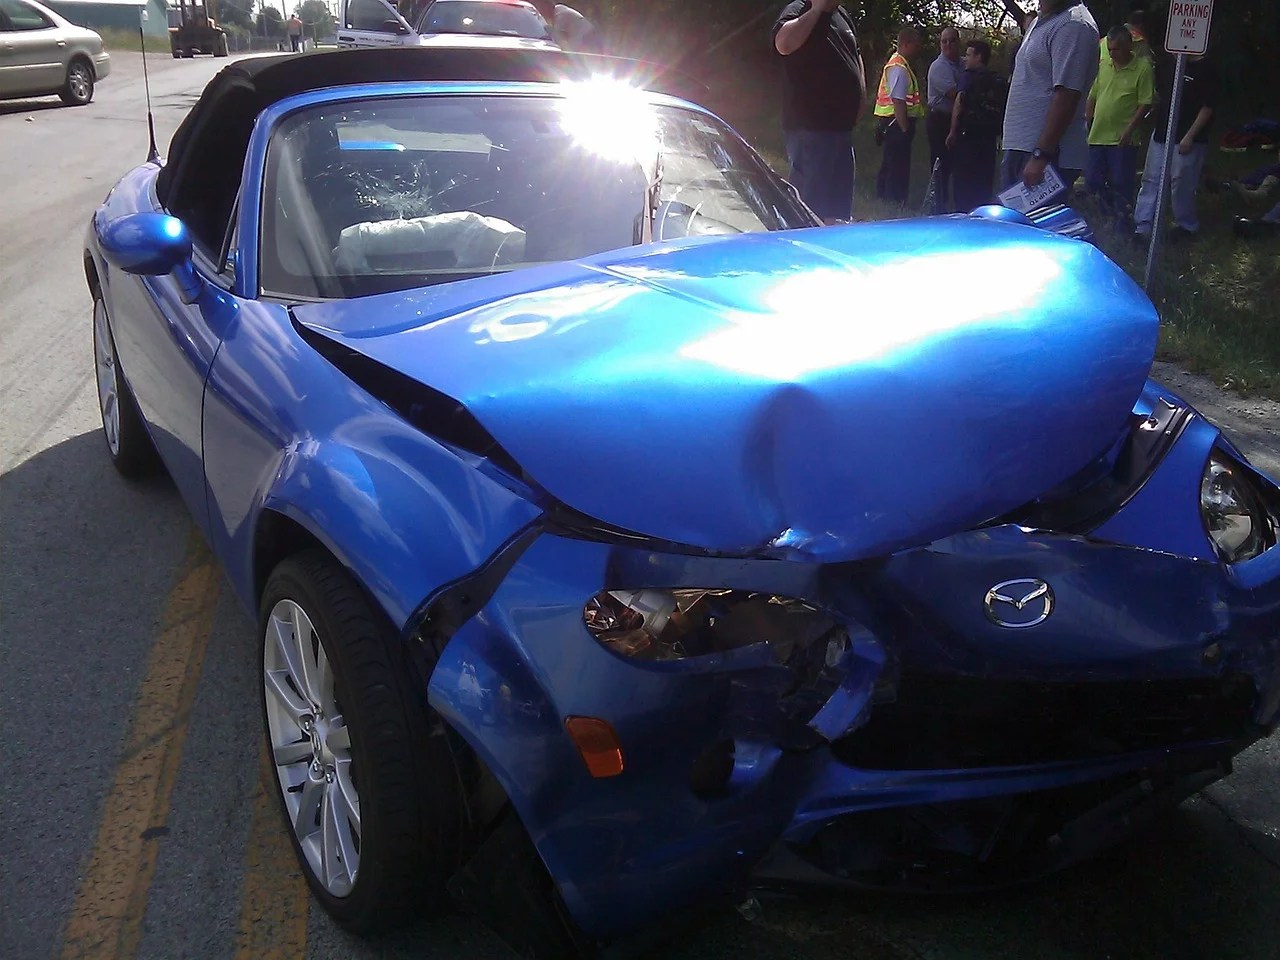 5 Things NOT To Do After an Auto Accident